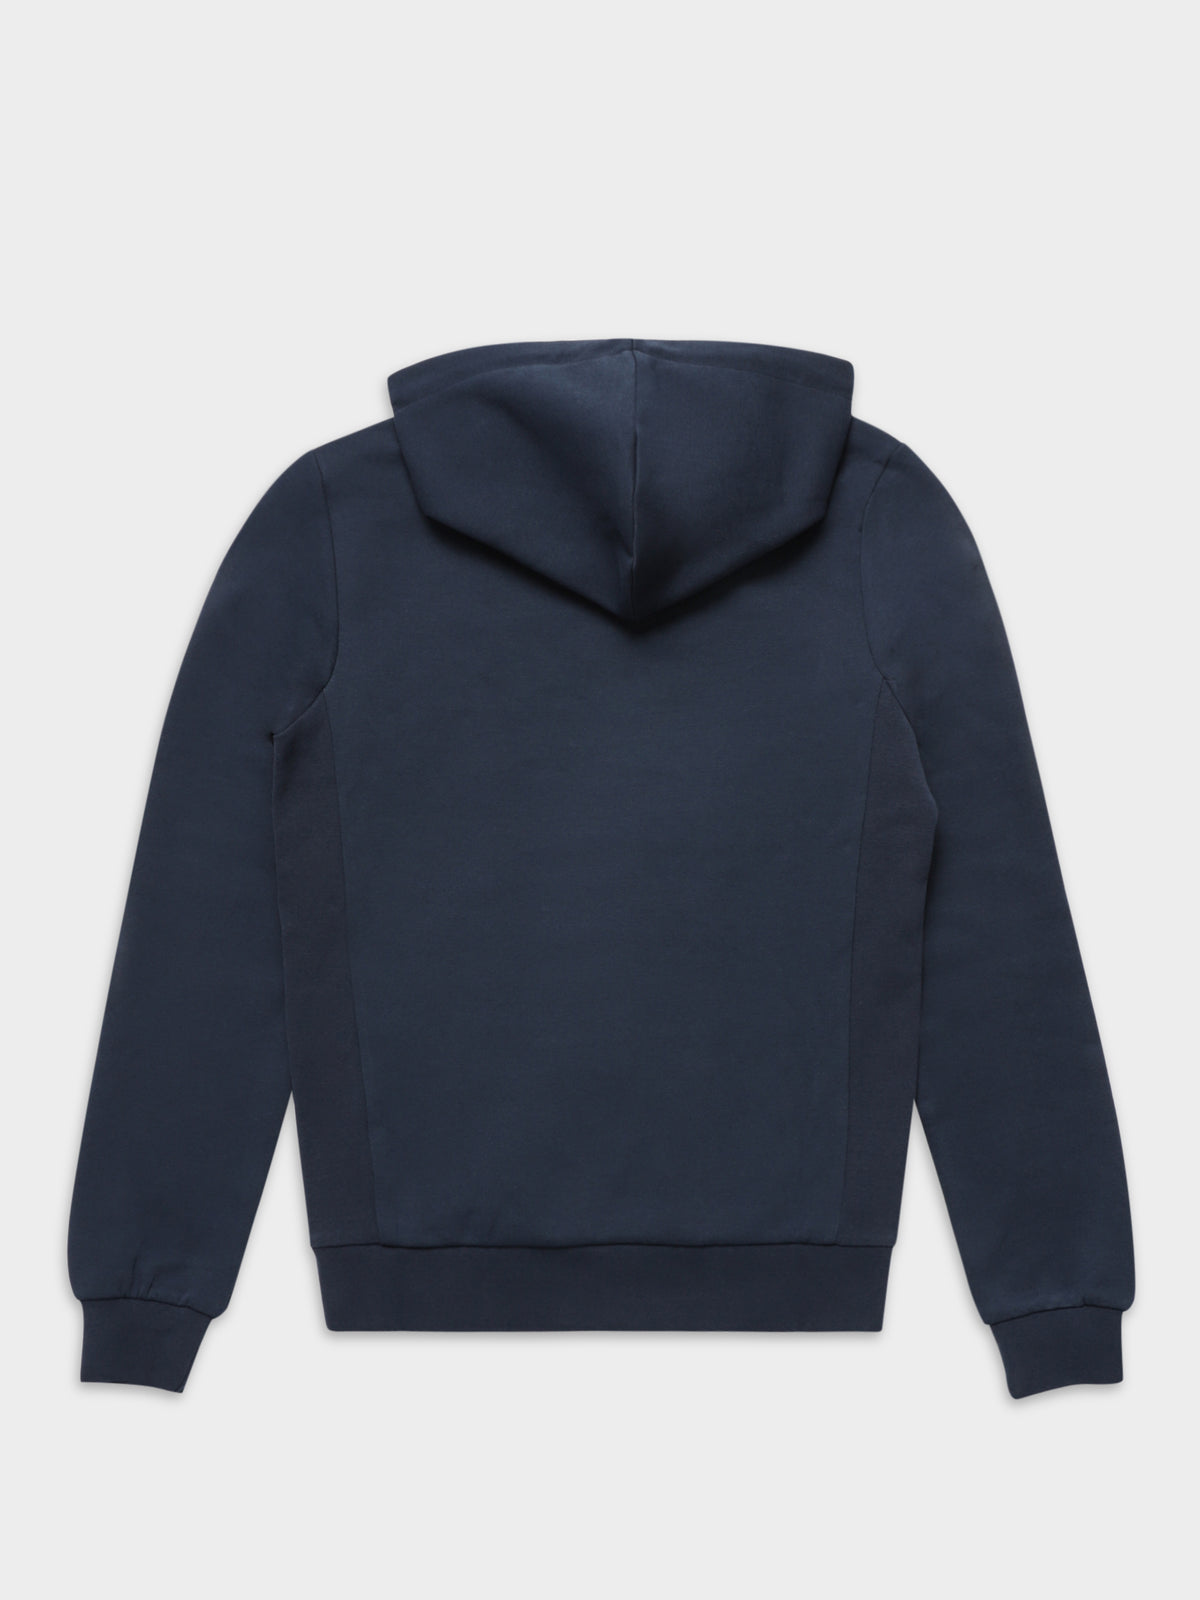 Essentiel Hooded Sweater in Blue